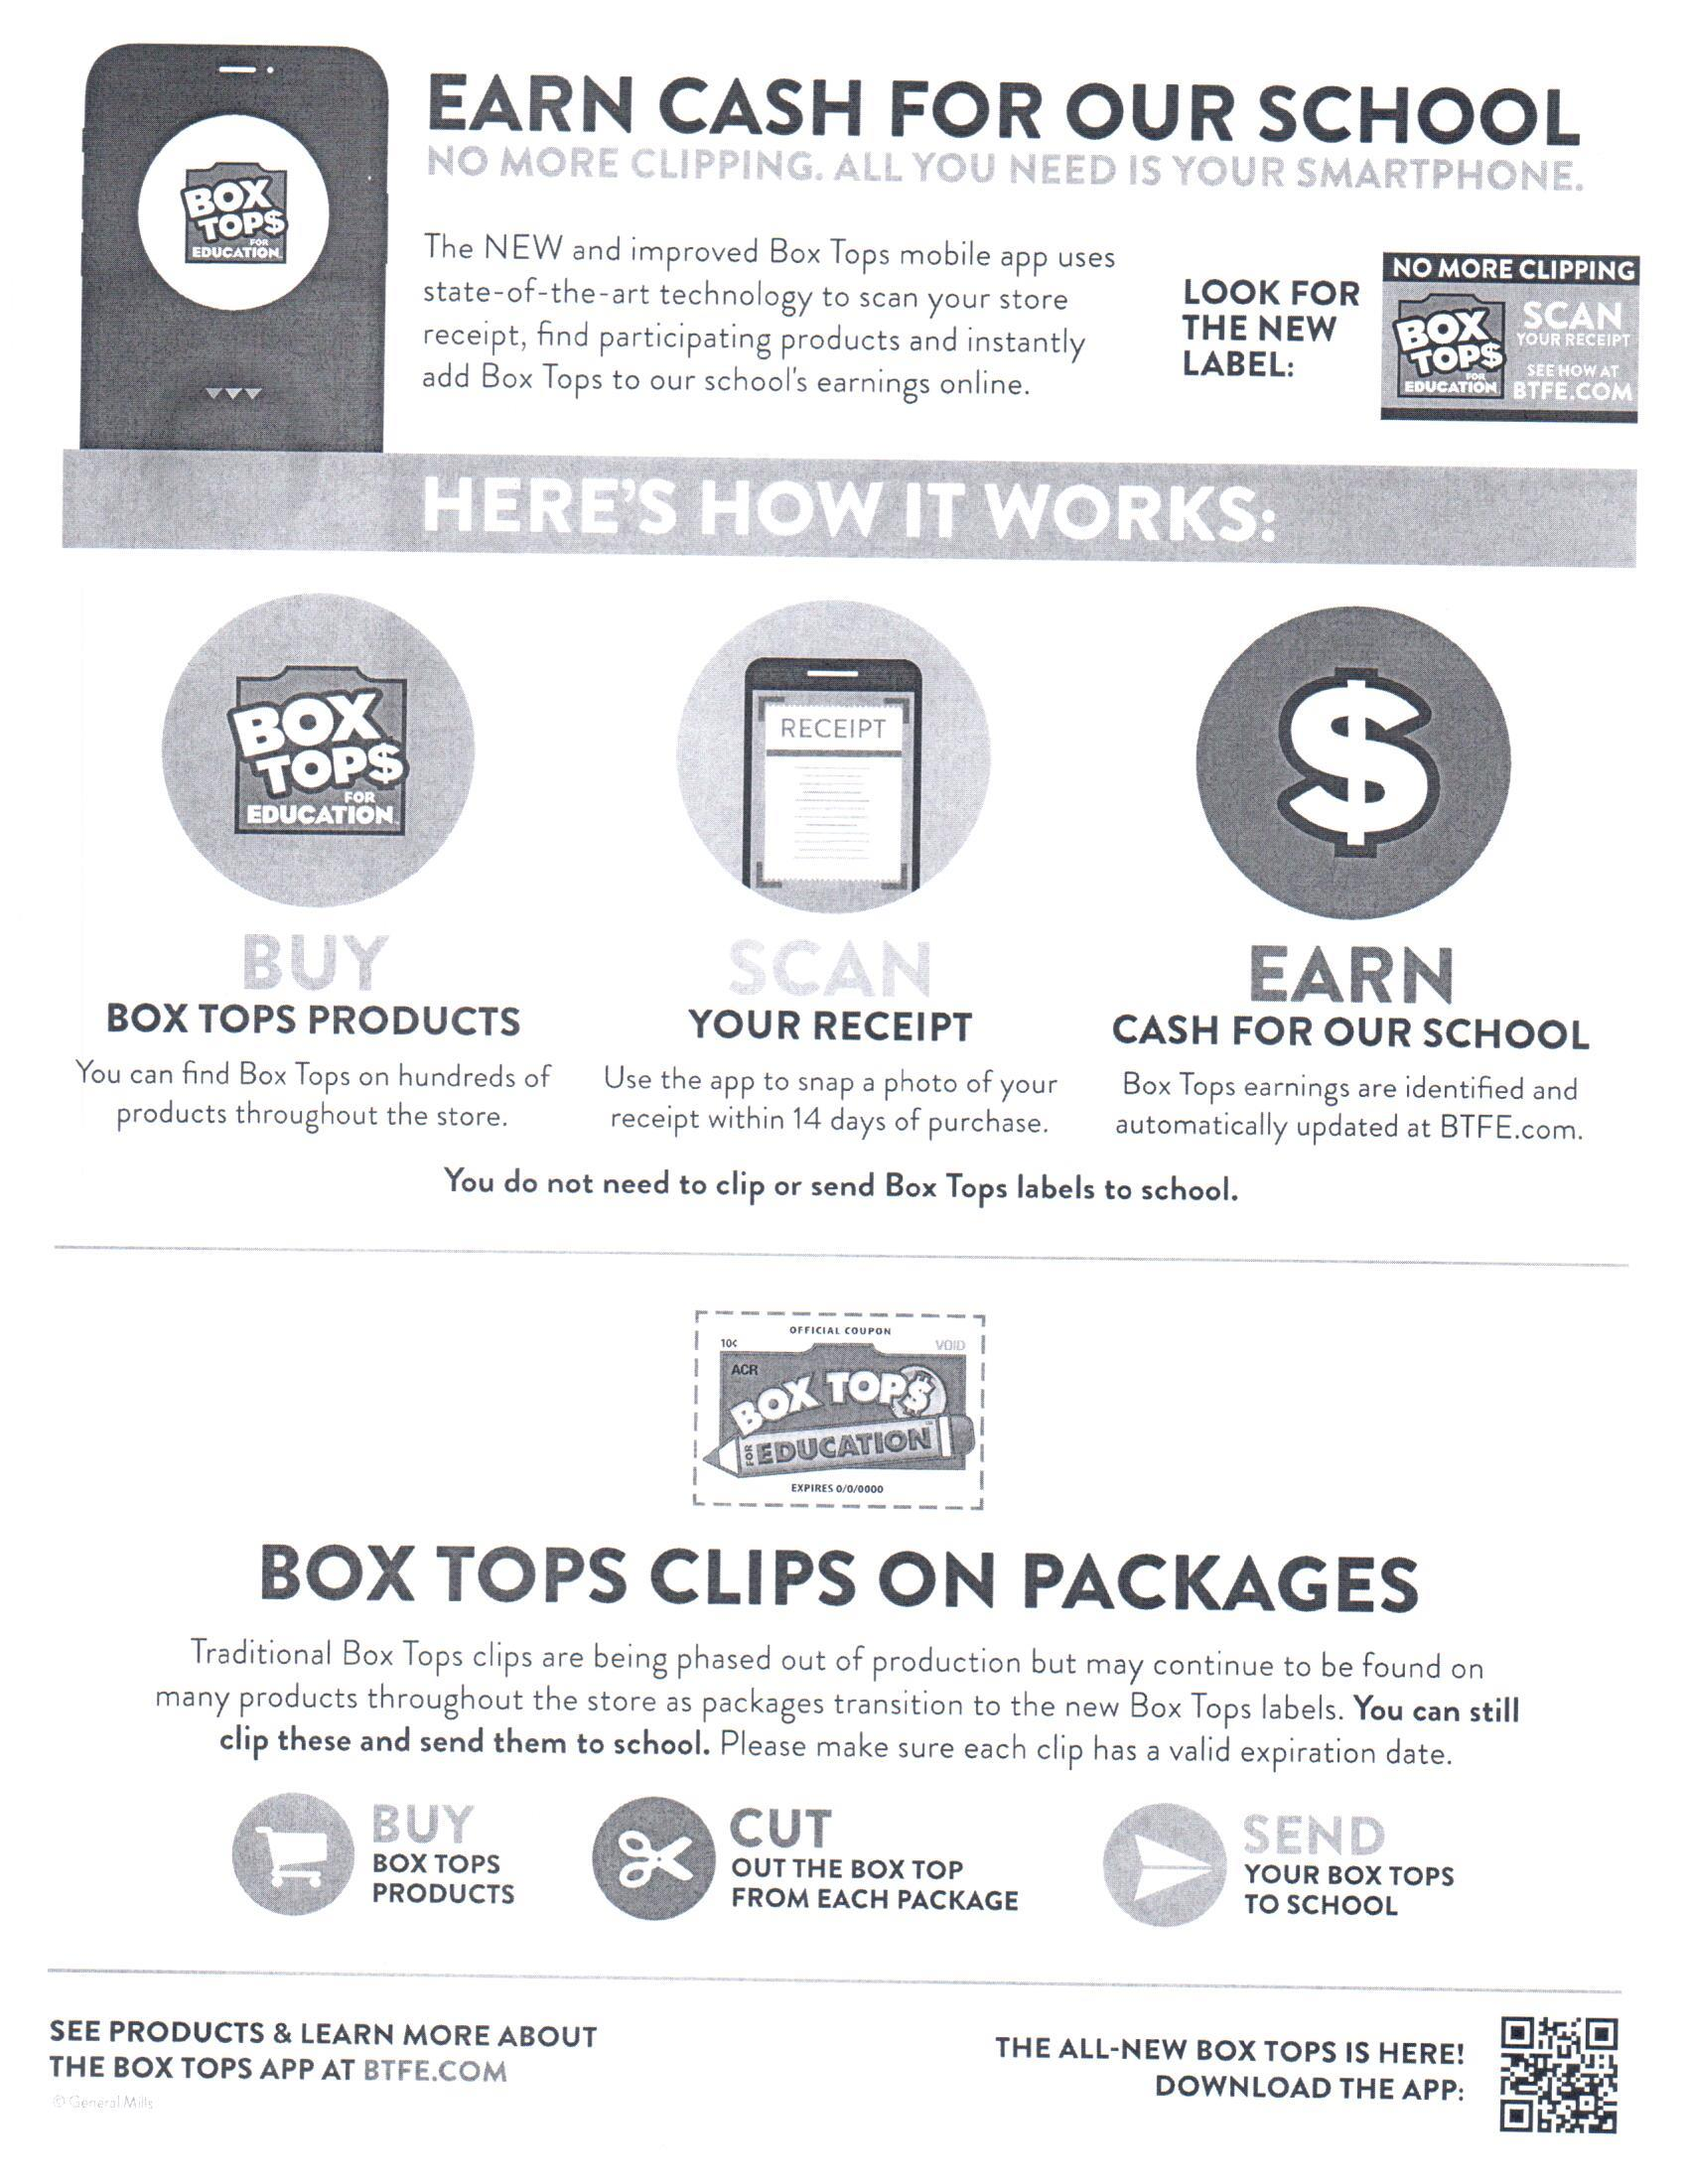 BOX TOPS FOR EDUCATION INFO